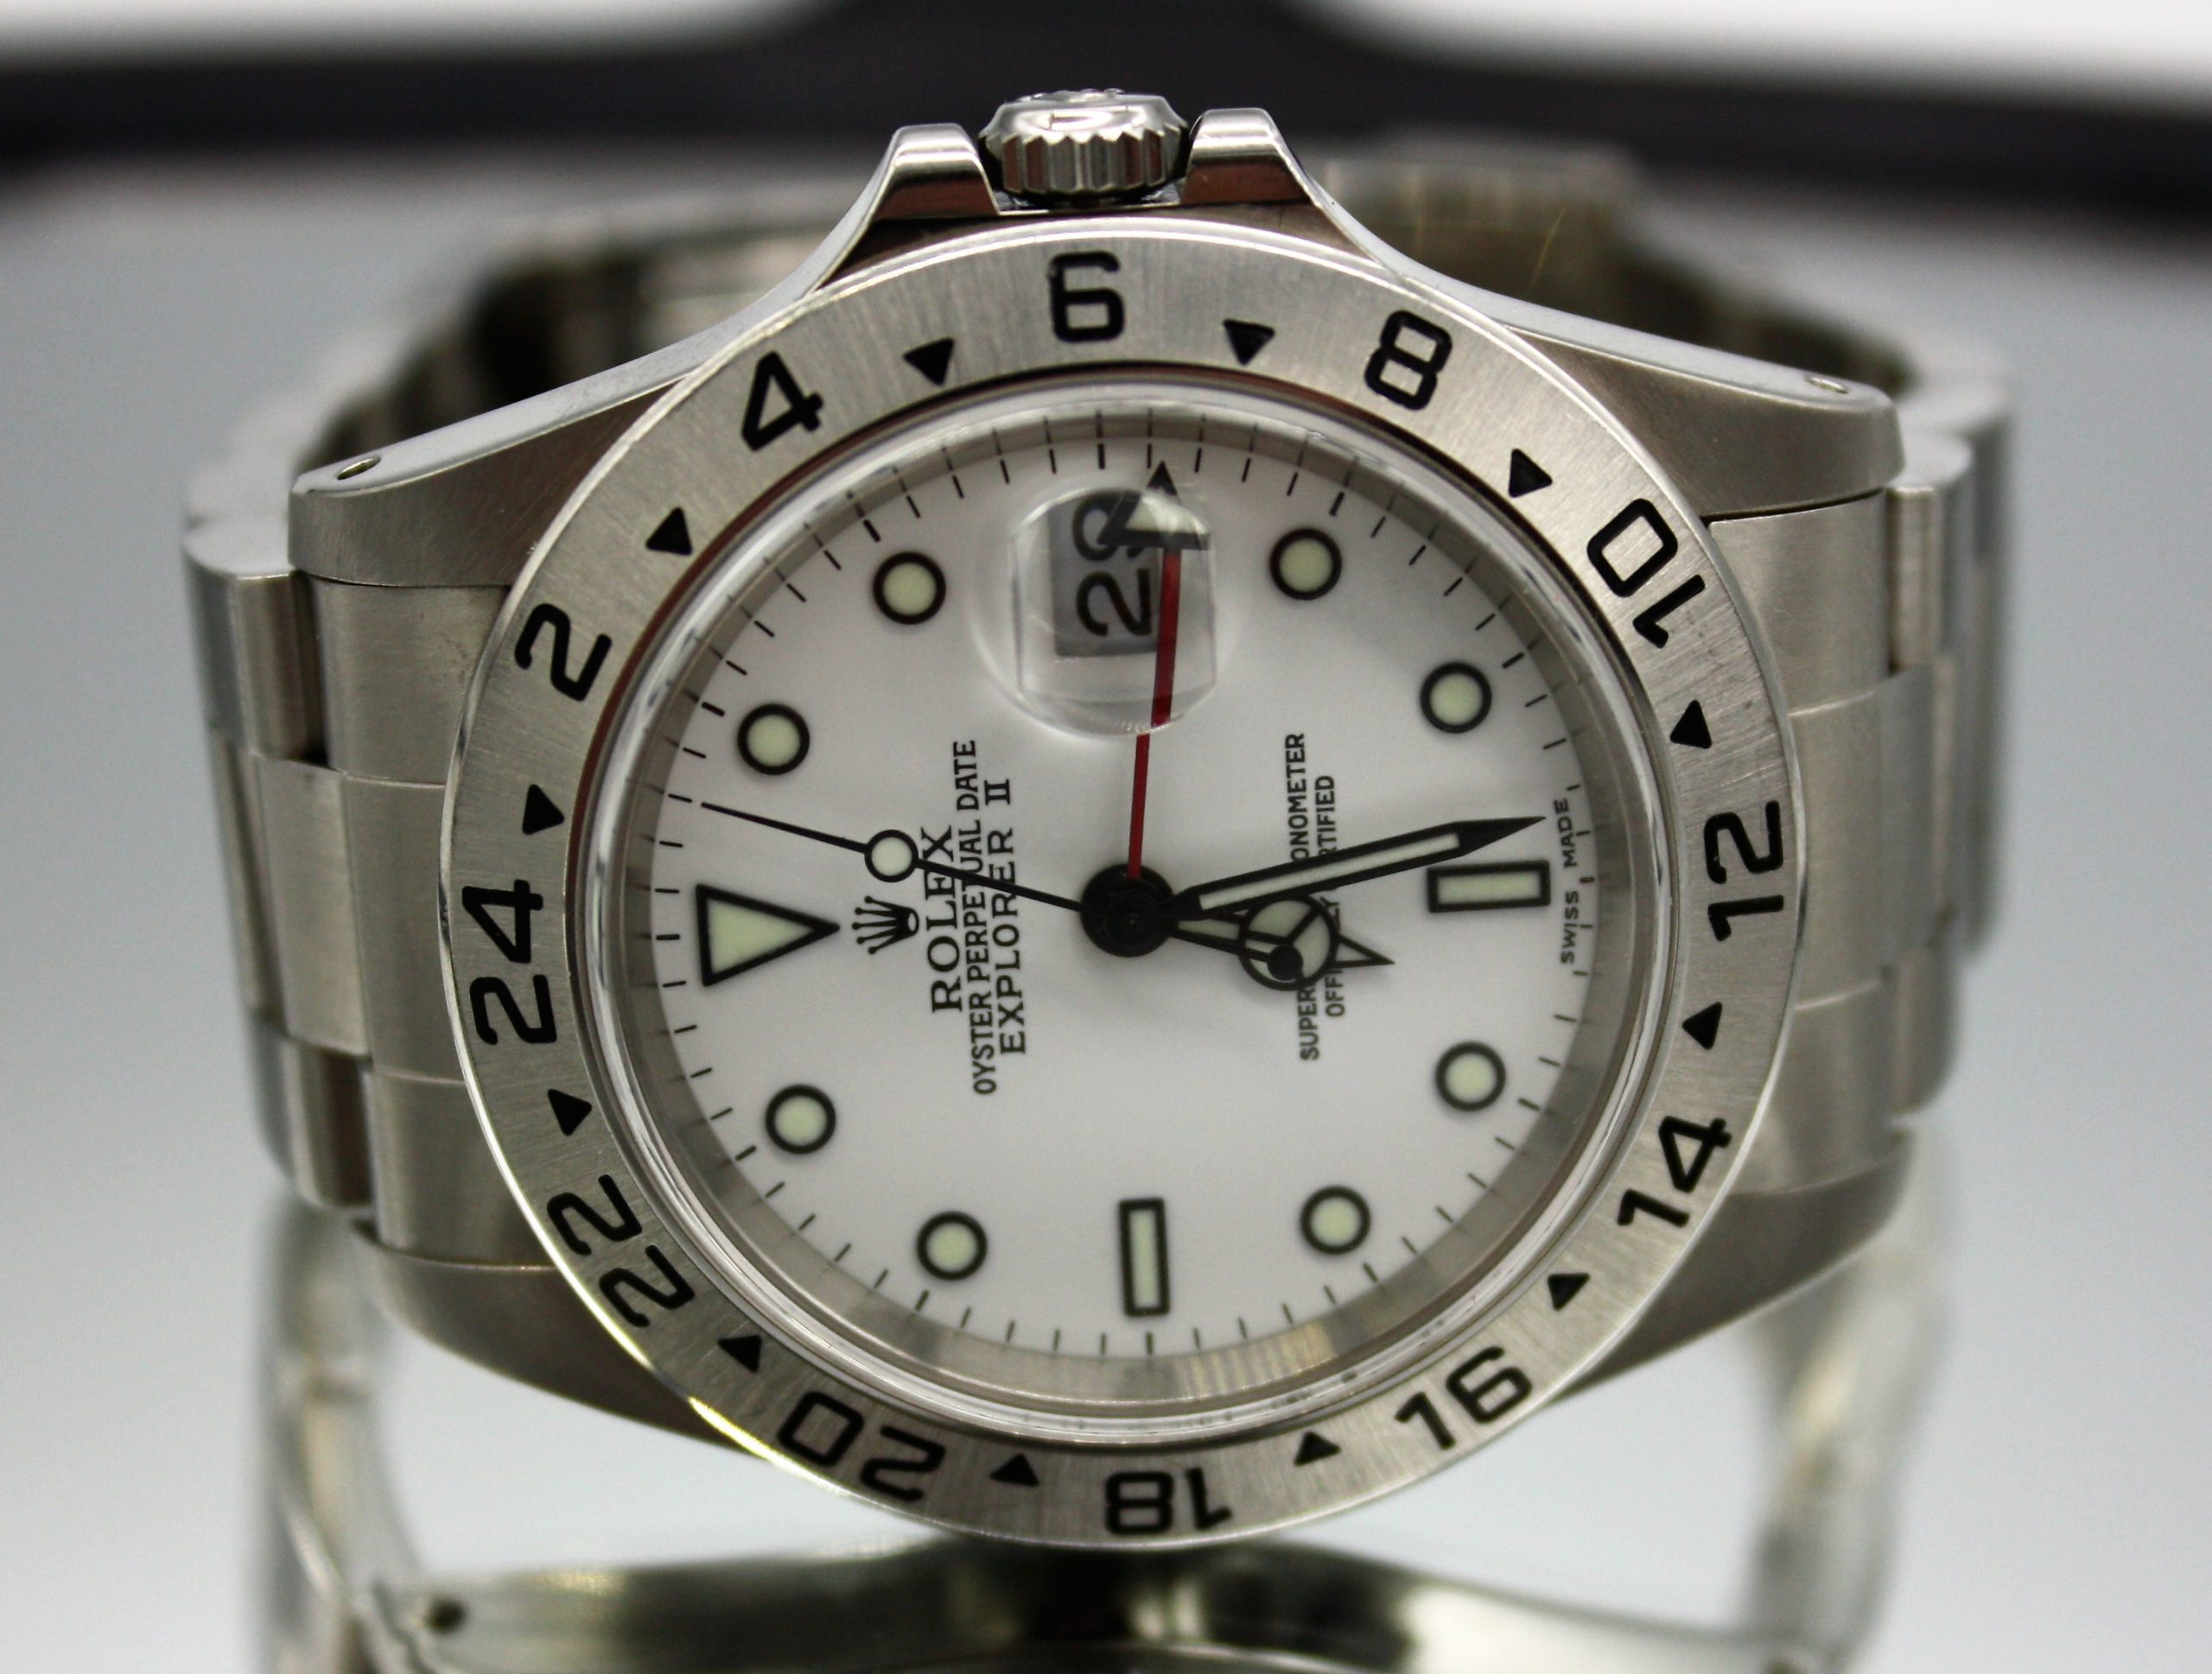 Rolex Explorer II GMT Now in Stock!